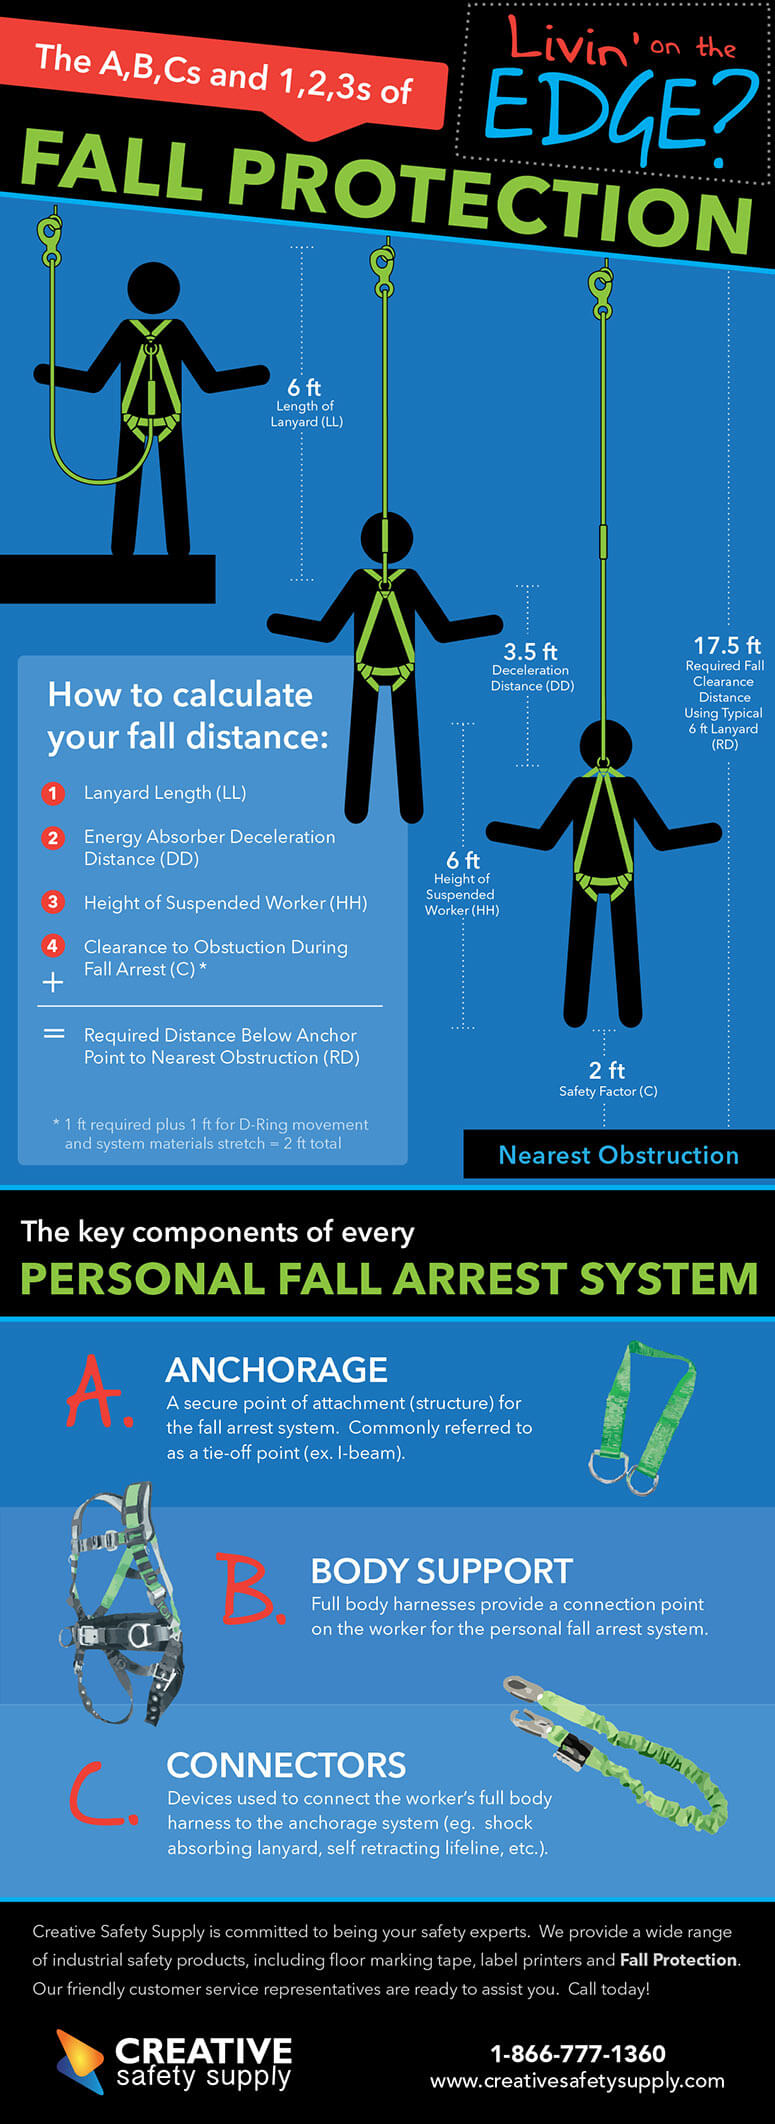 The A,B,Cs and 1,2,3s of Fall Protection